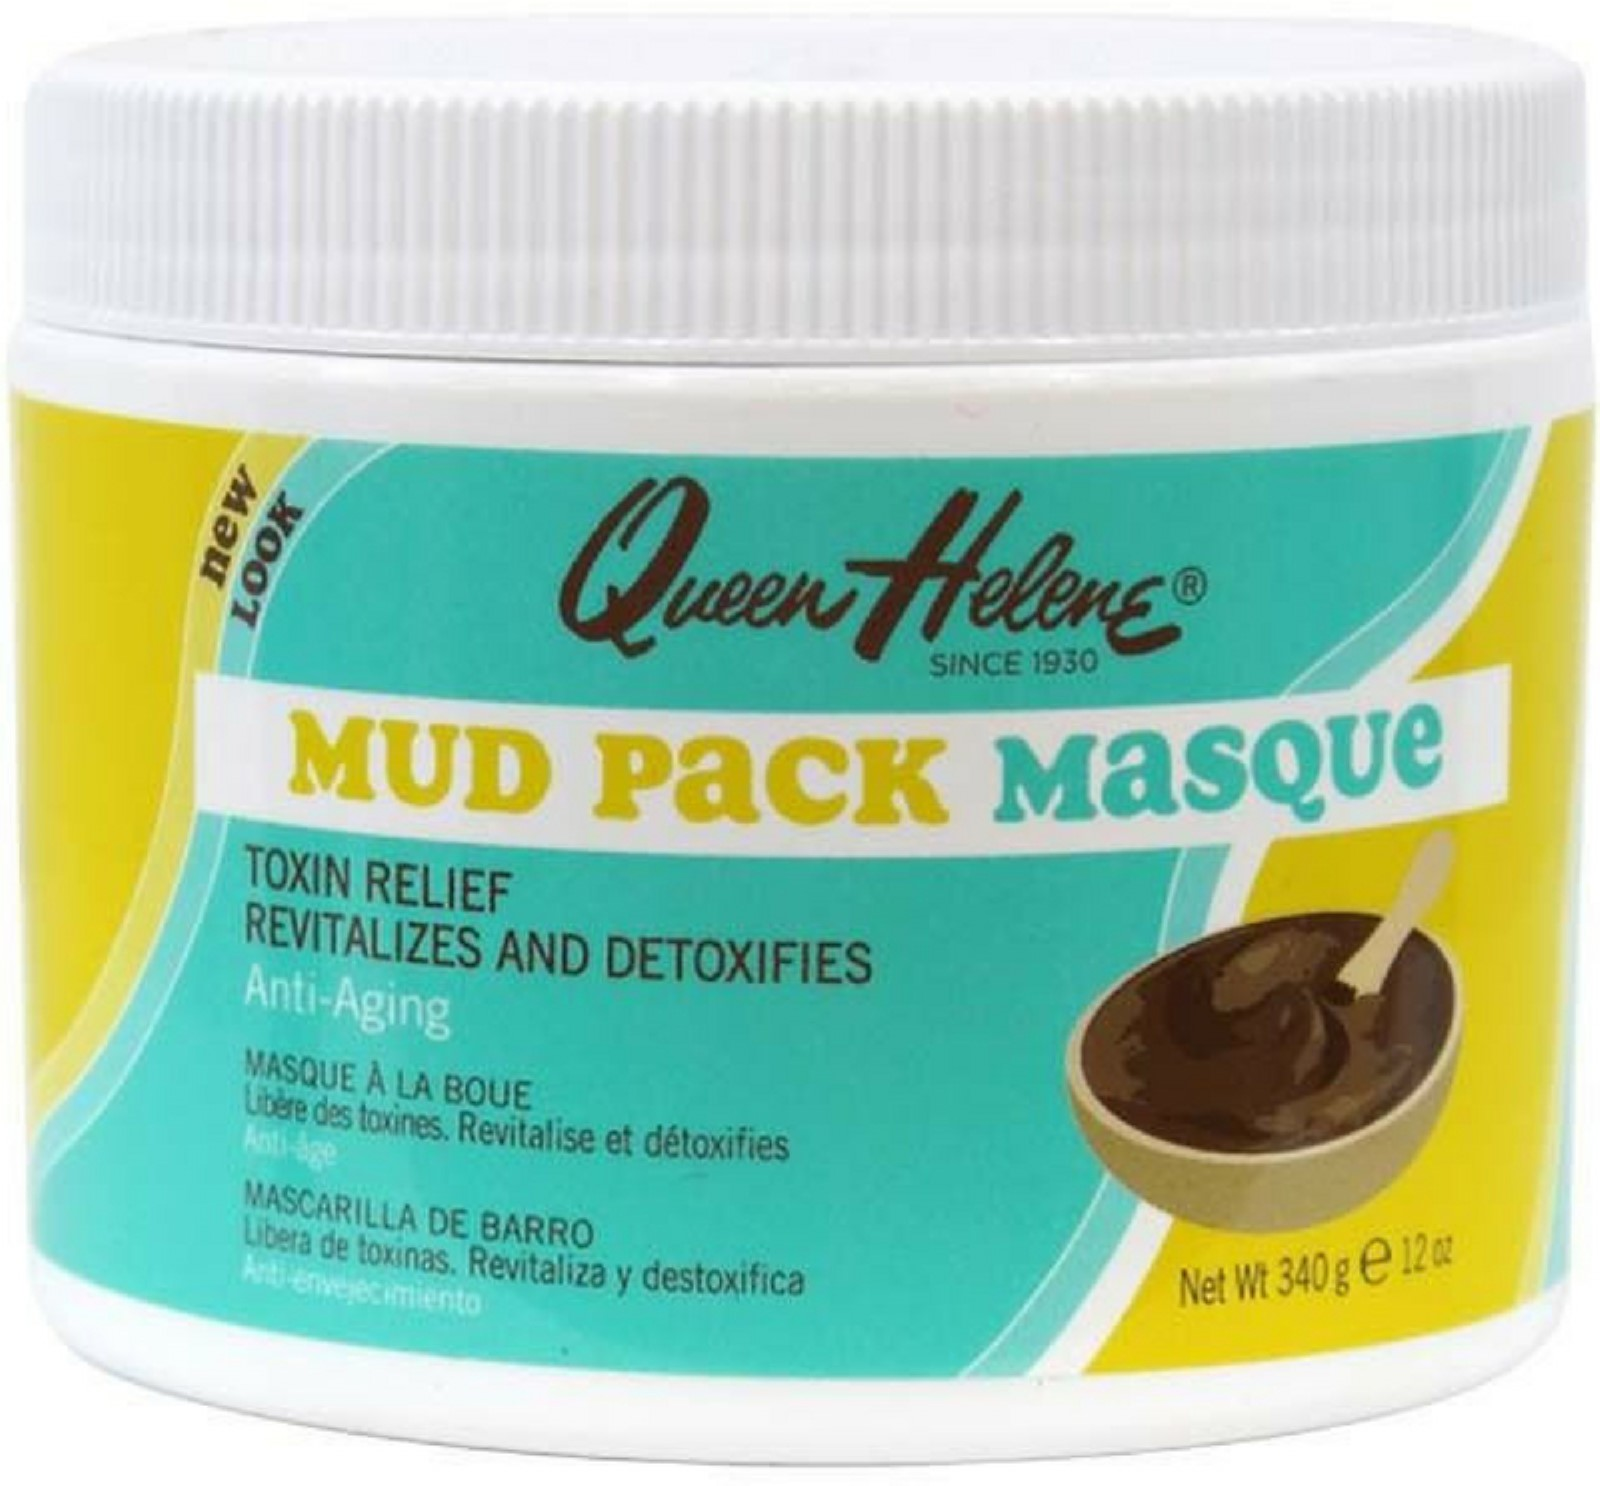 QUEEN HELENE Mud Pack Masque, 12 oz